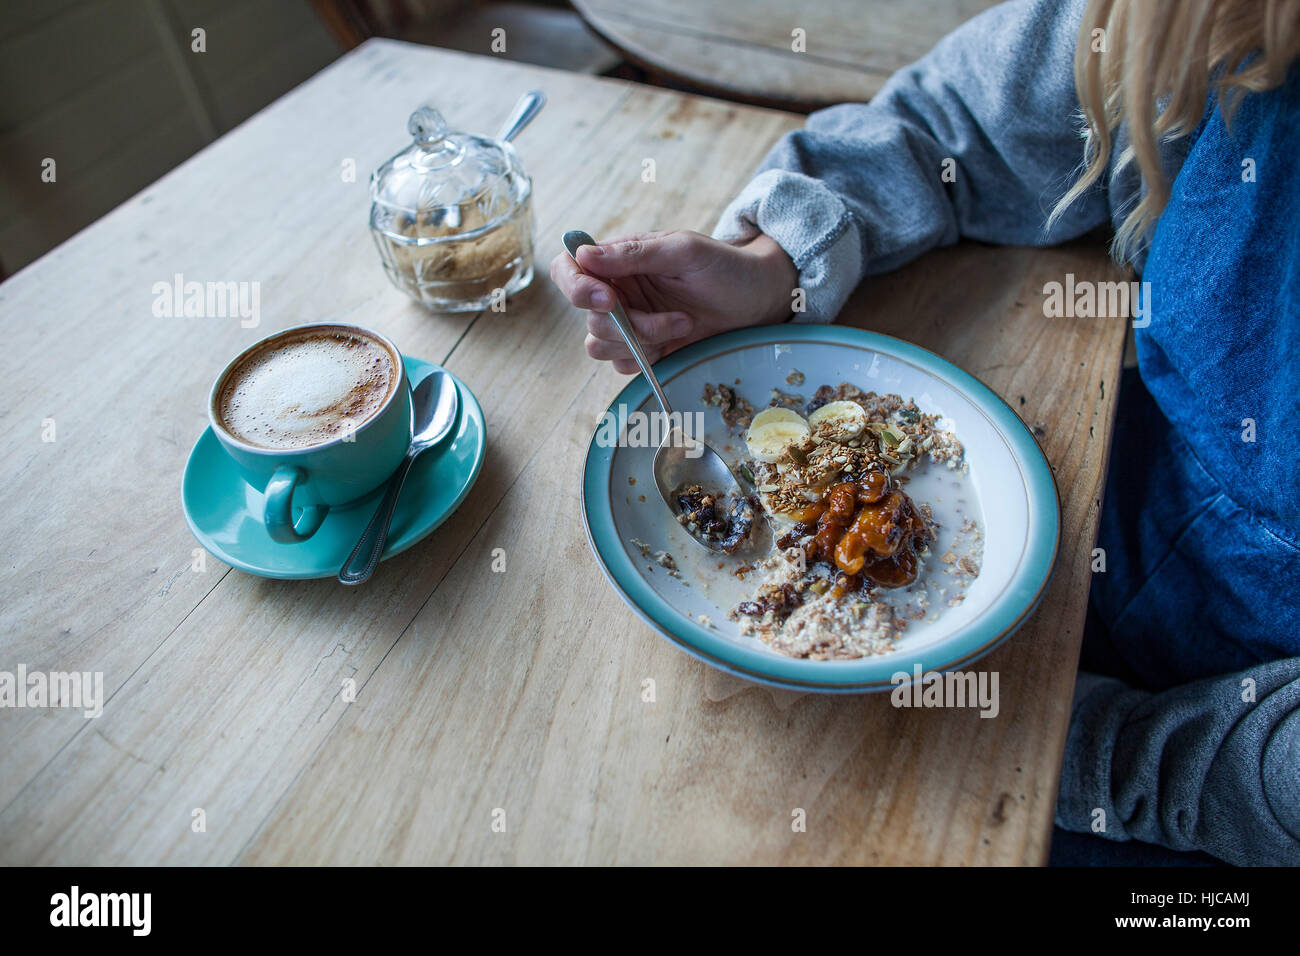 Young woman in cafe, eating muesli, mid section - Stock Image